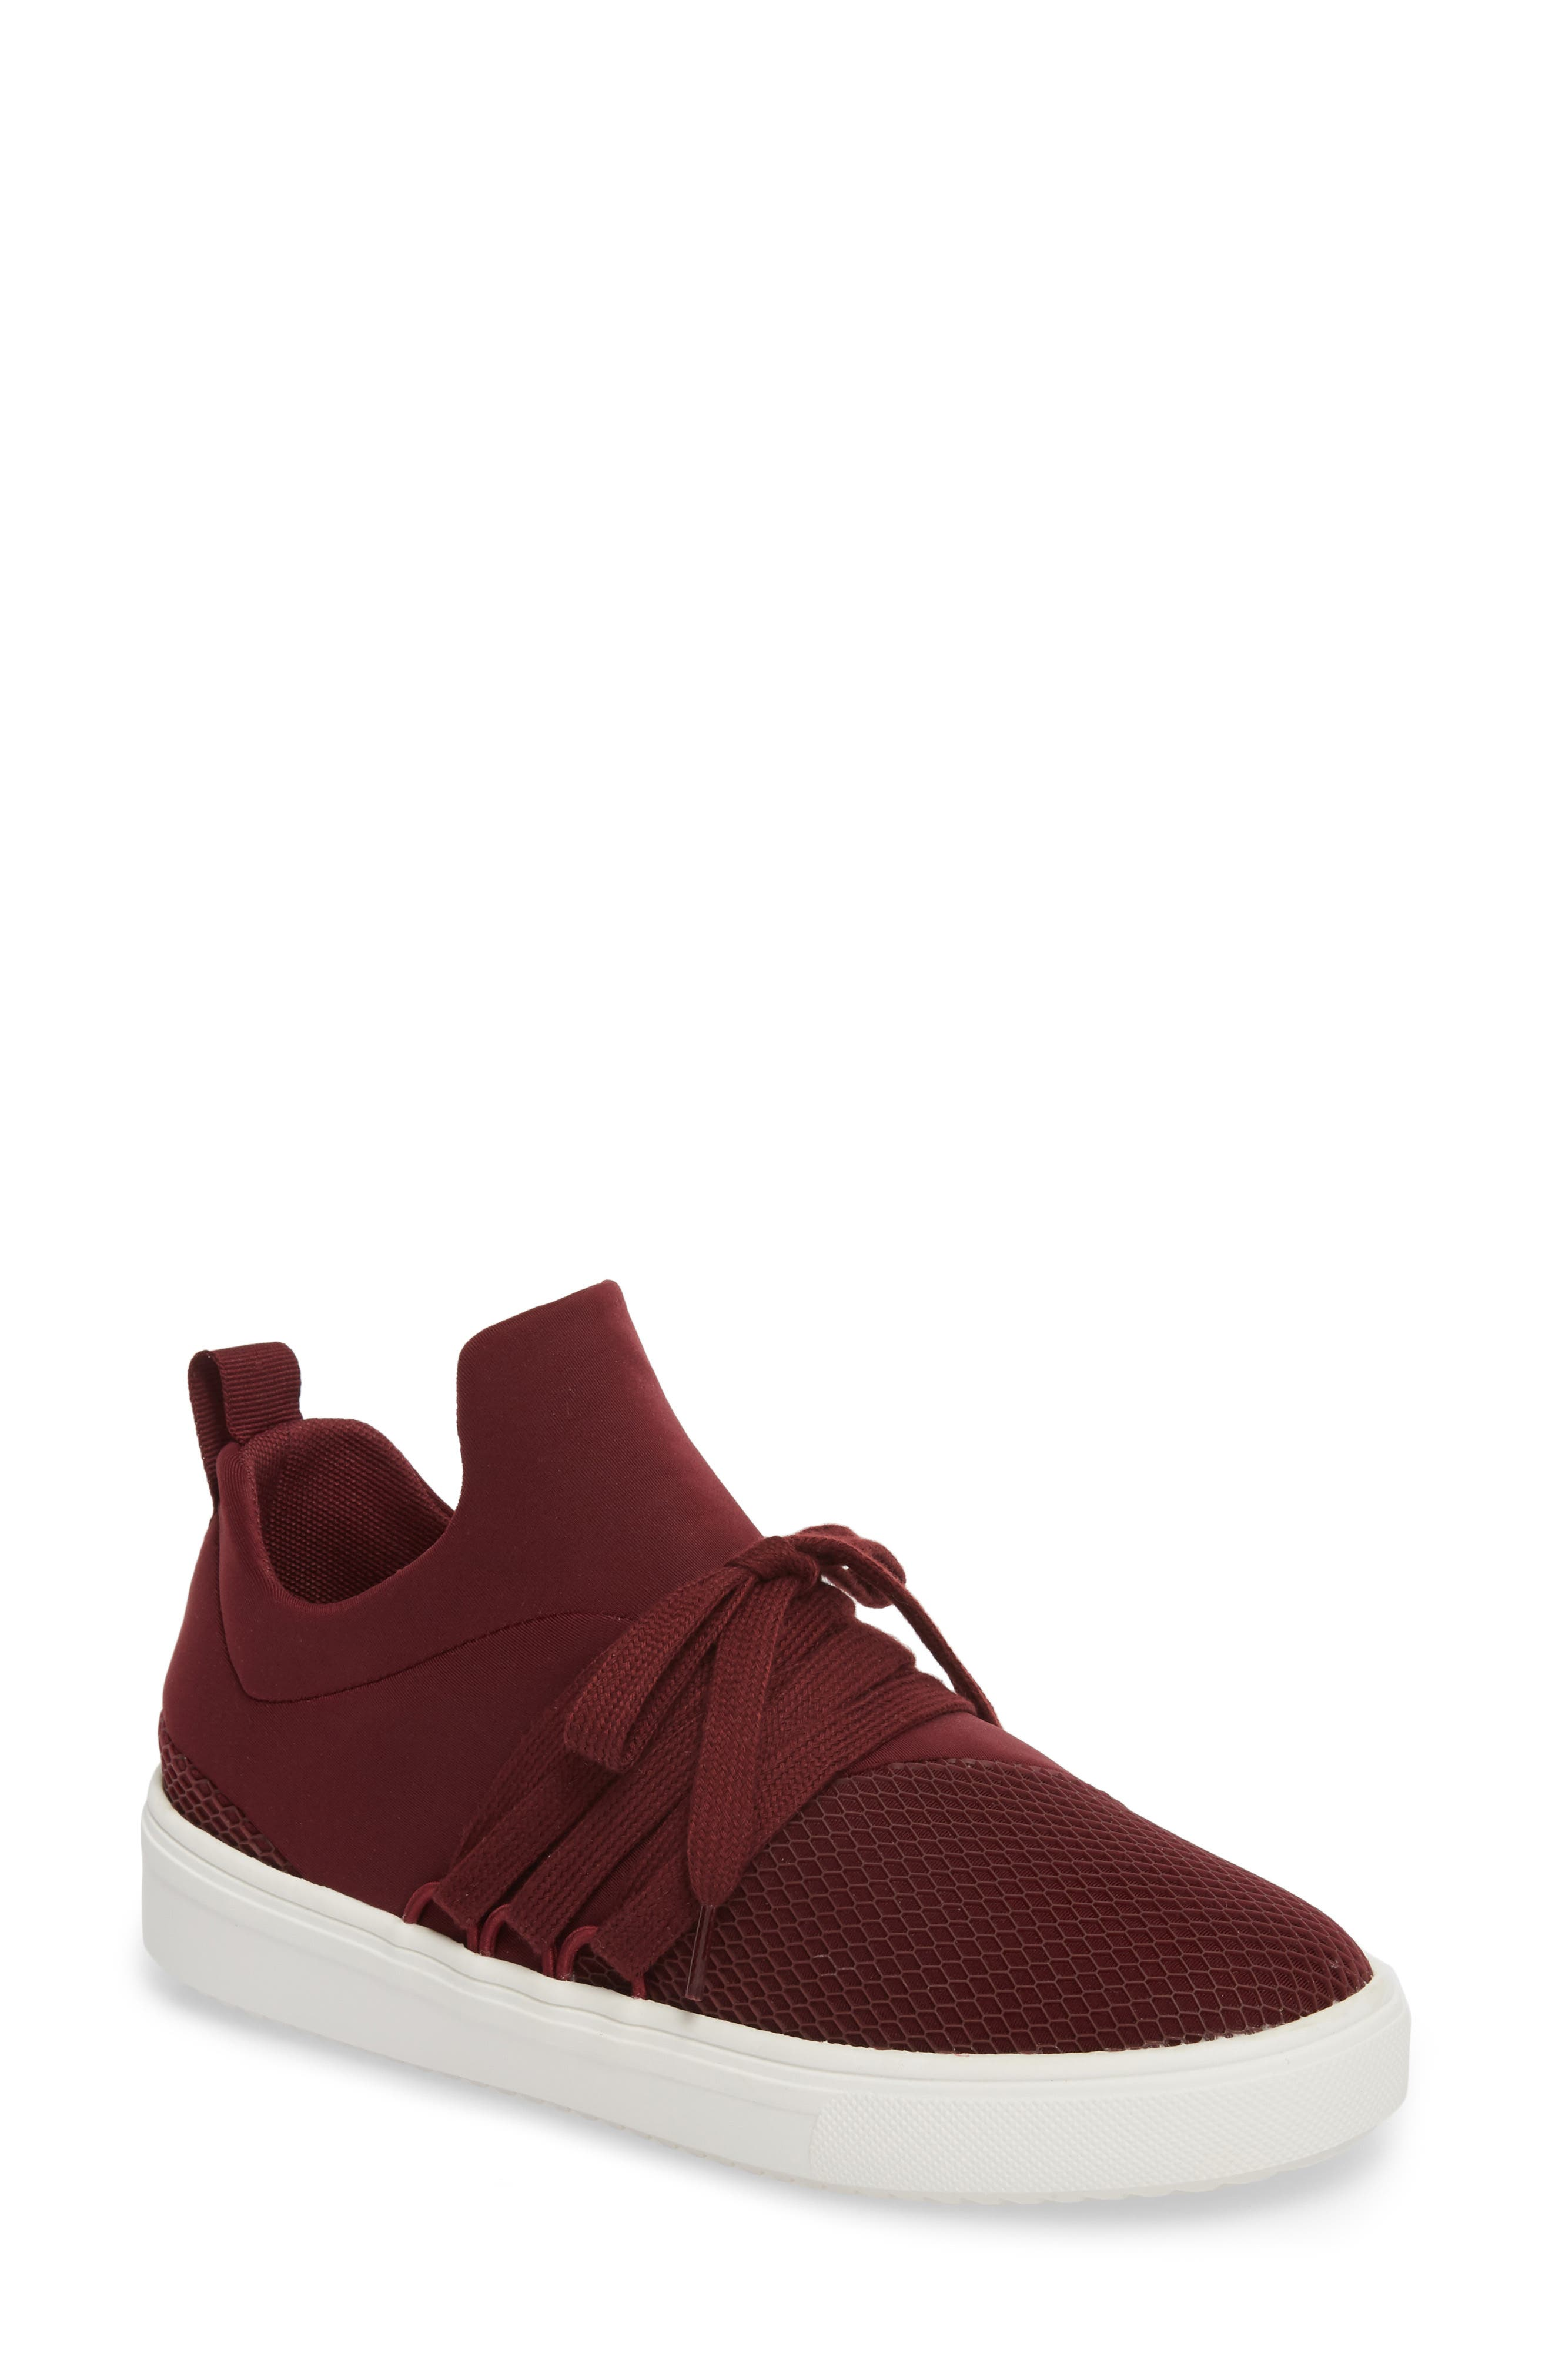 Lancer Sneaker,                             Main thumbnail 1, color,                             Burgundy